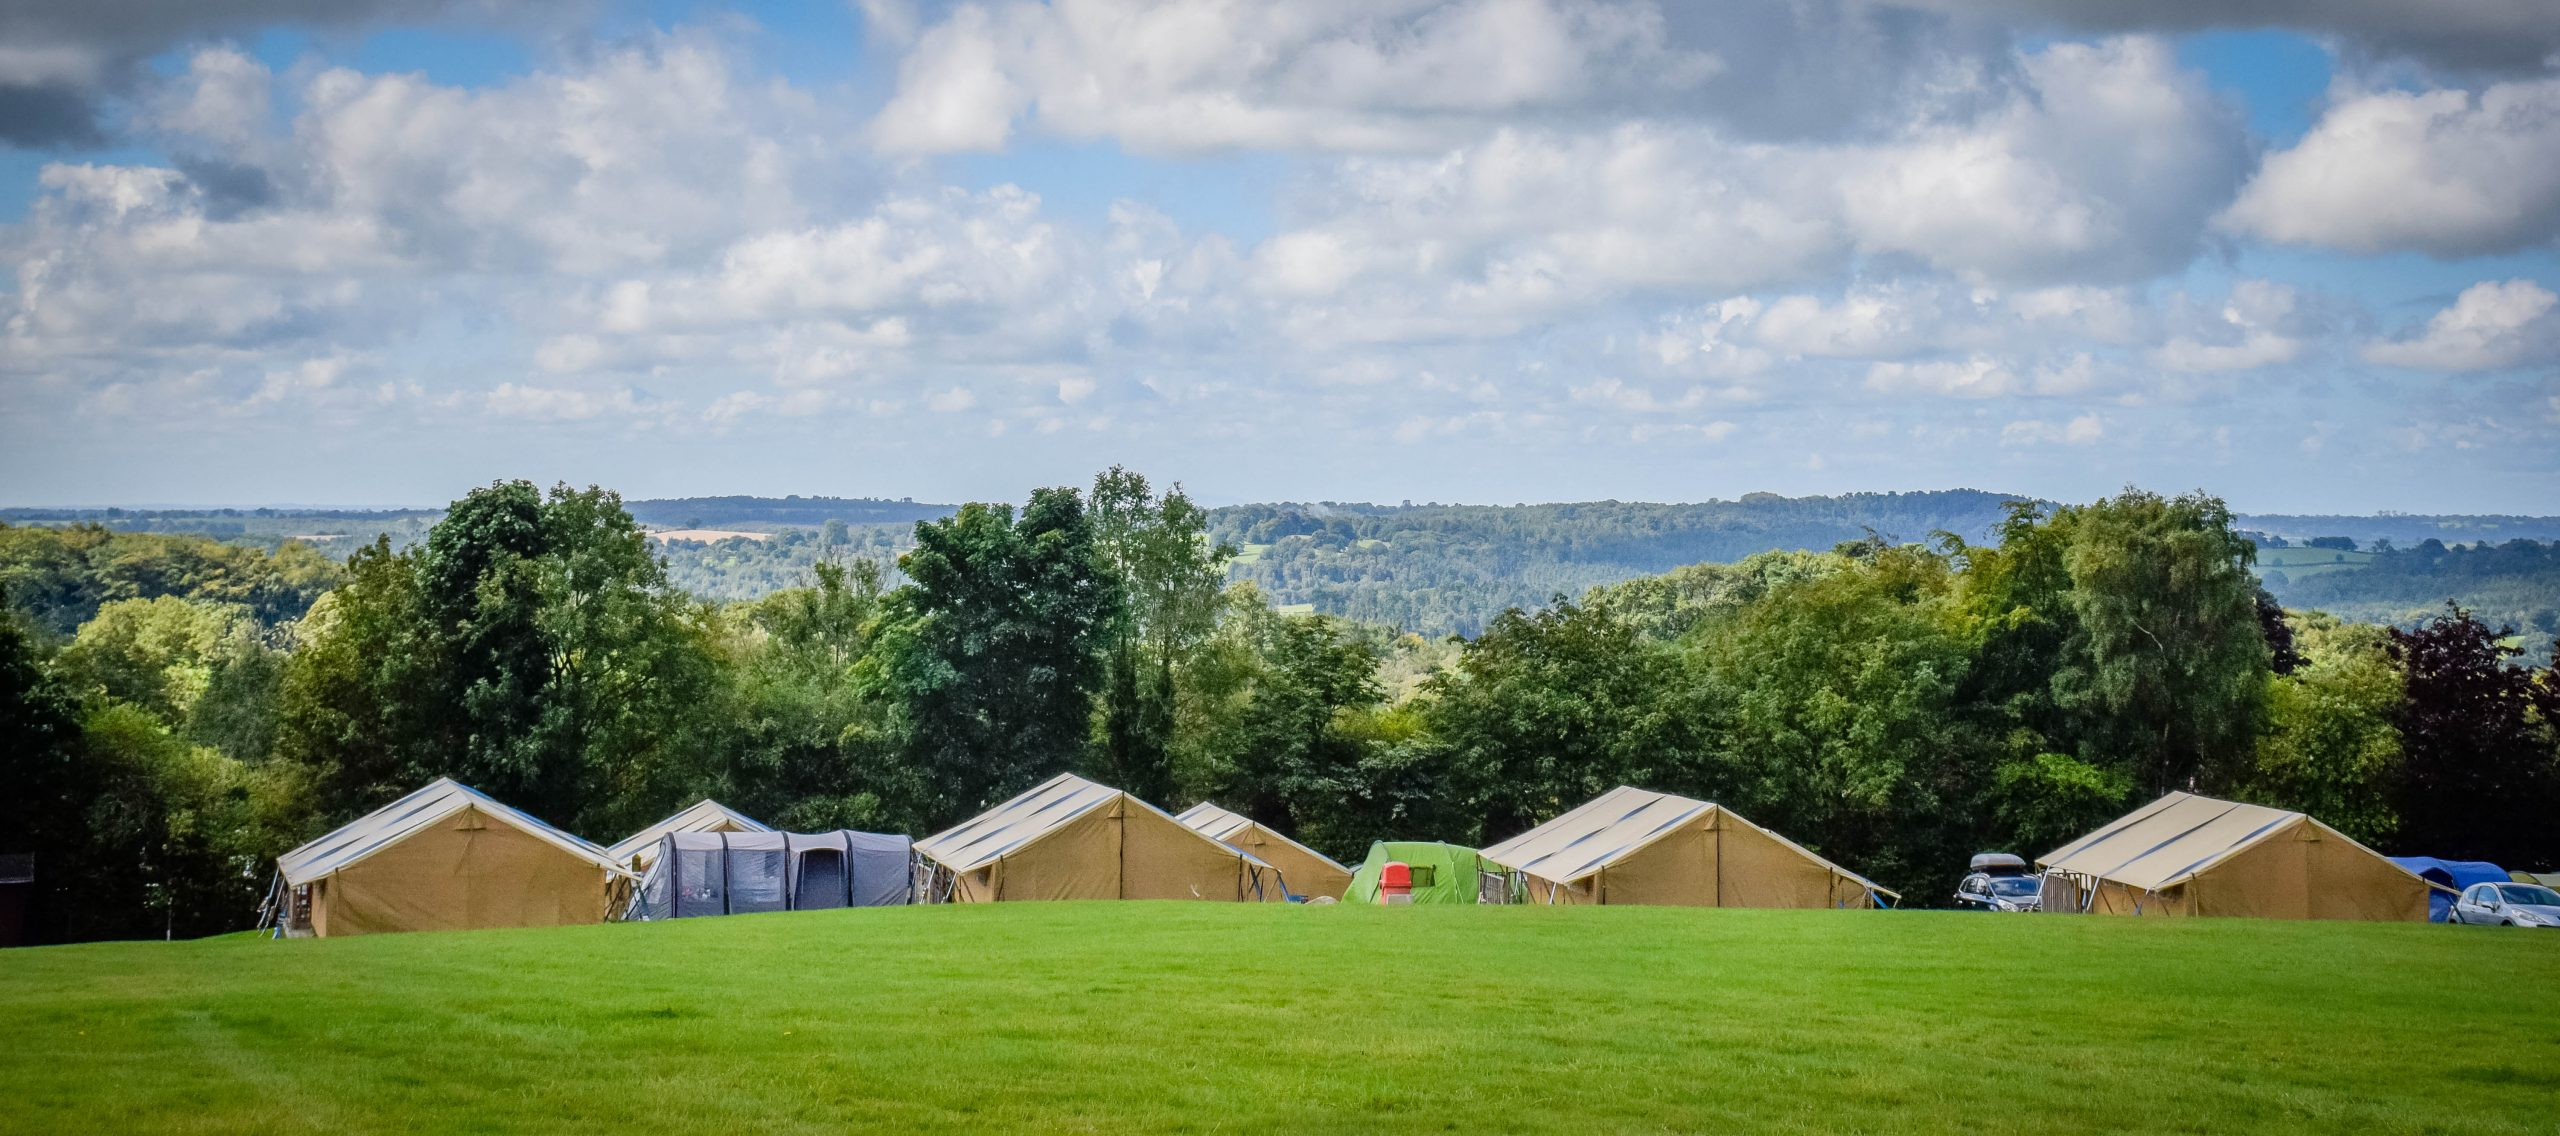 Alton, The Star – Camping and Caravanning Club Site | Staffordshire